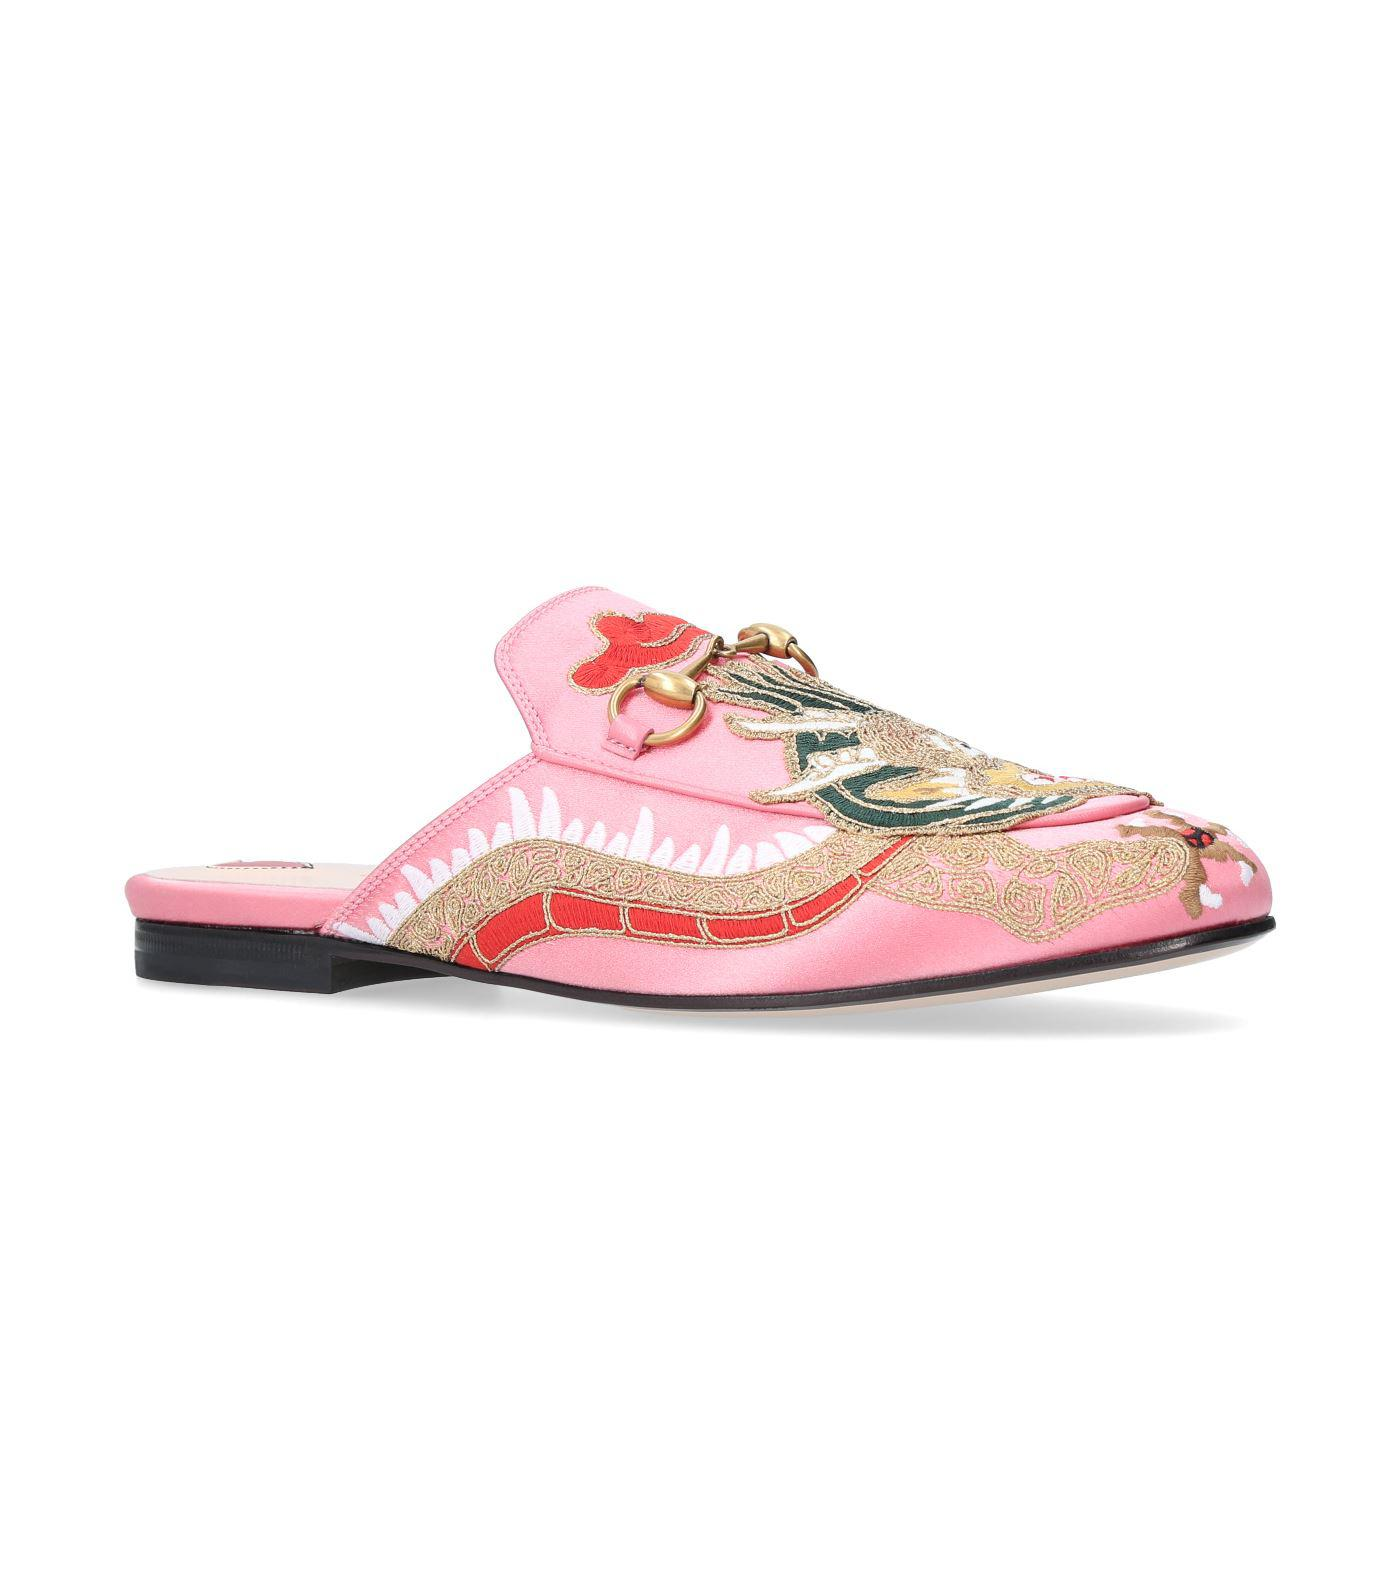 af37d24a5 Gucci Princetown Satin Dragon Slippers in Pink - Lyst